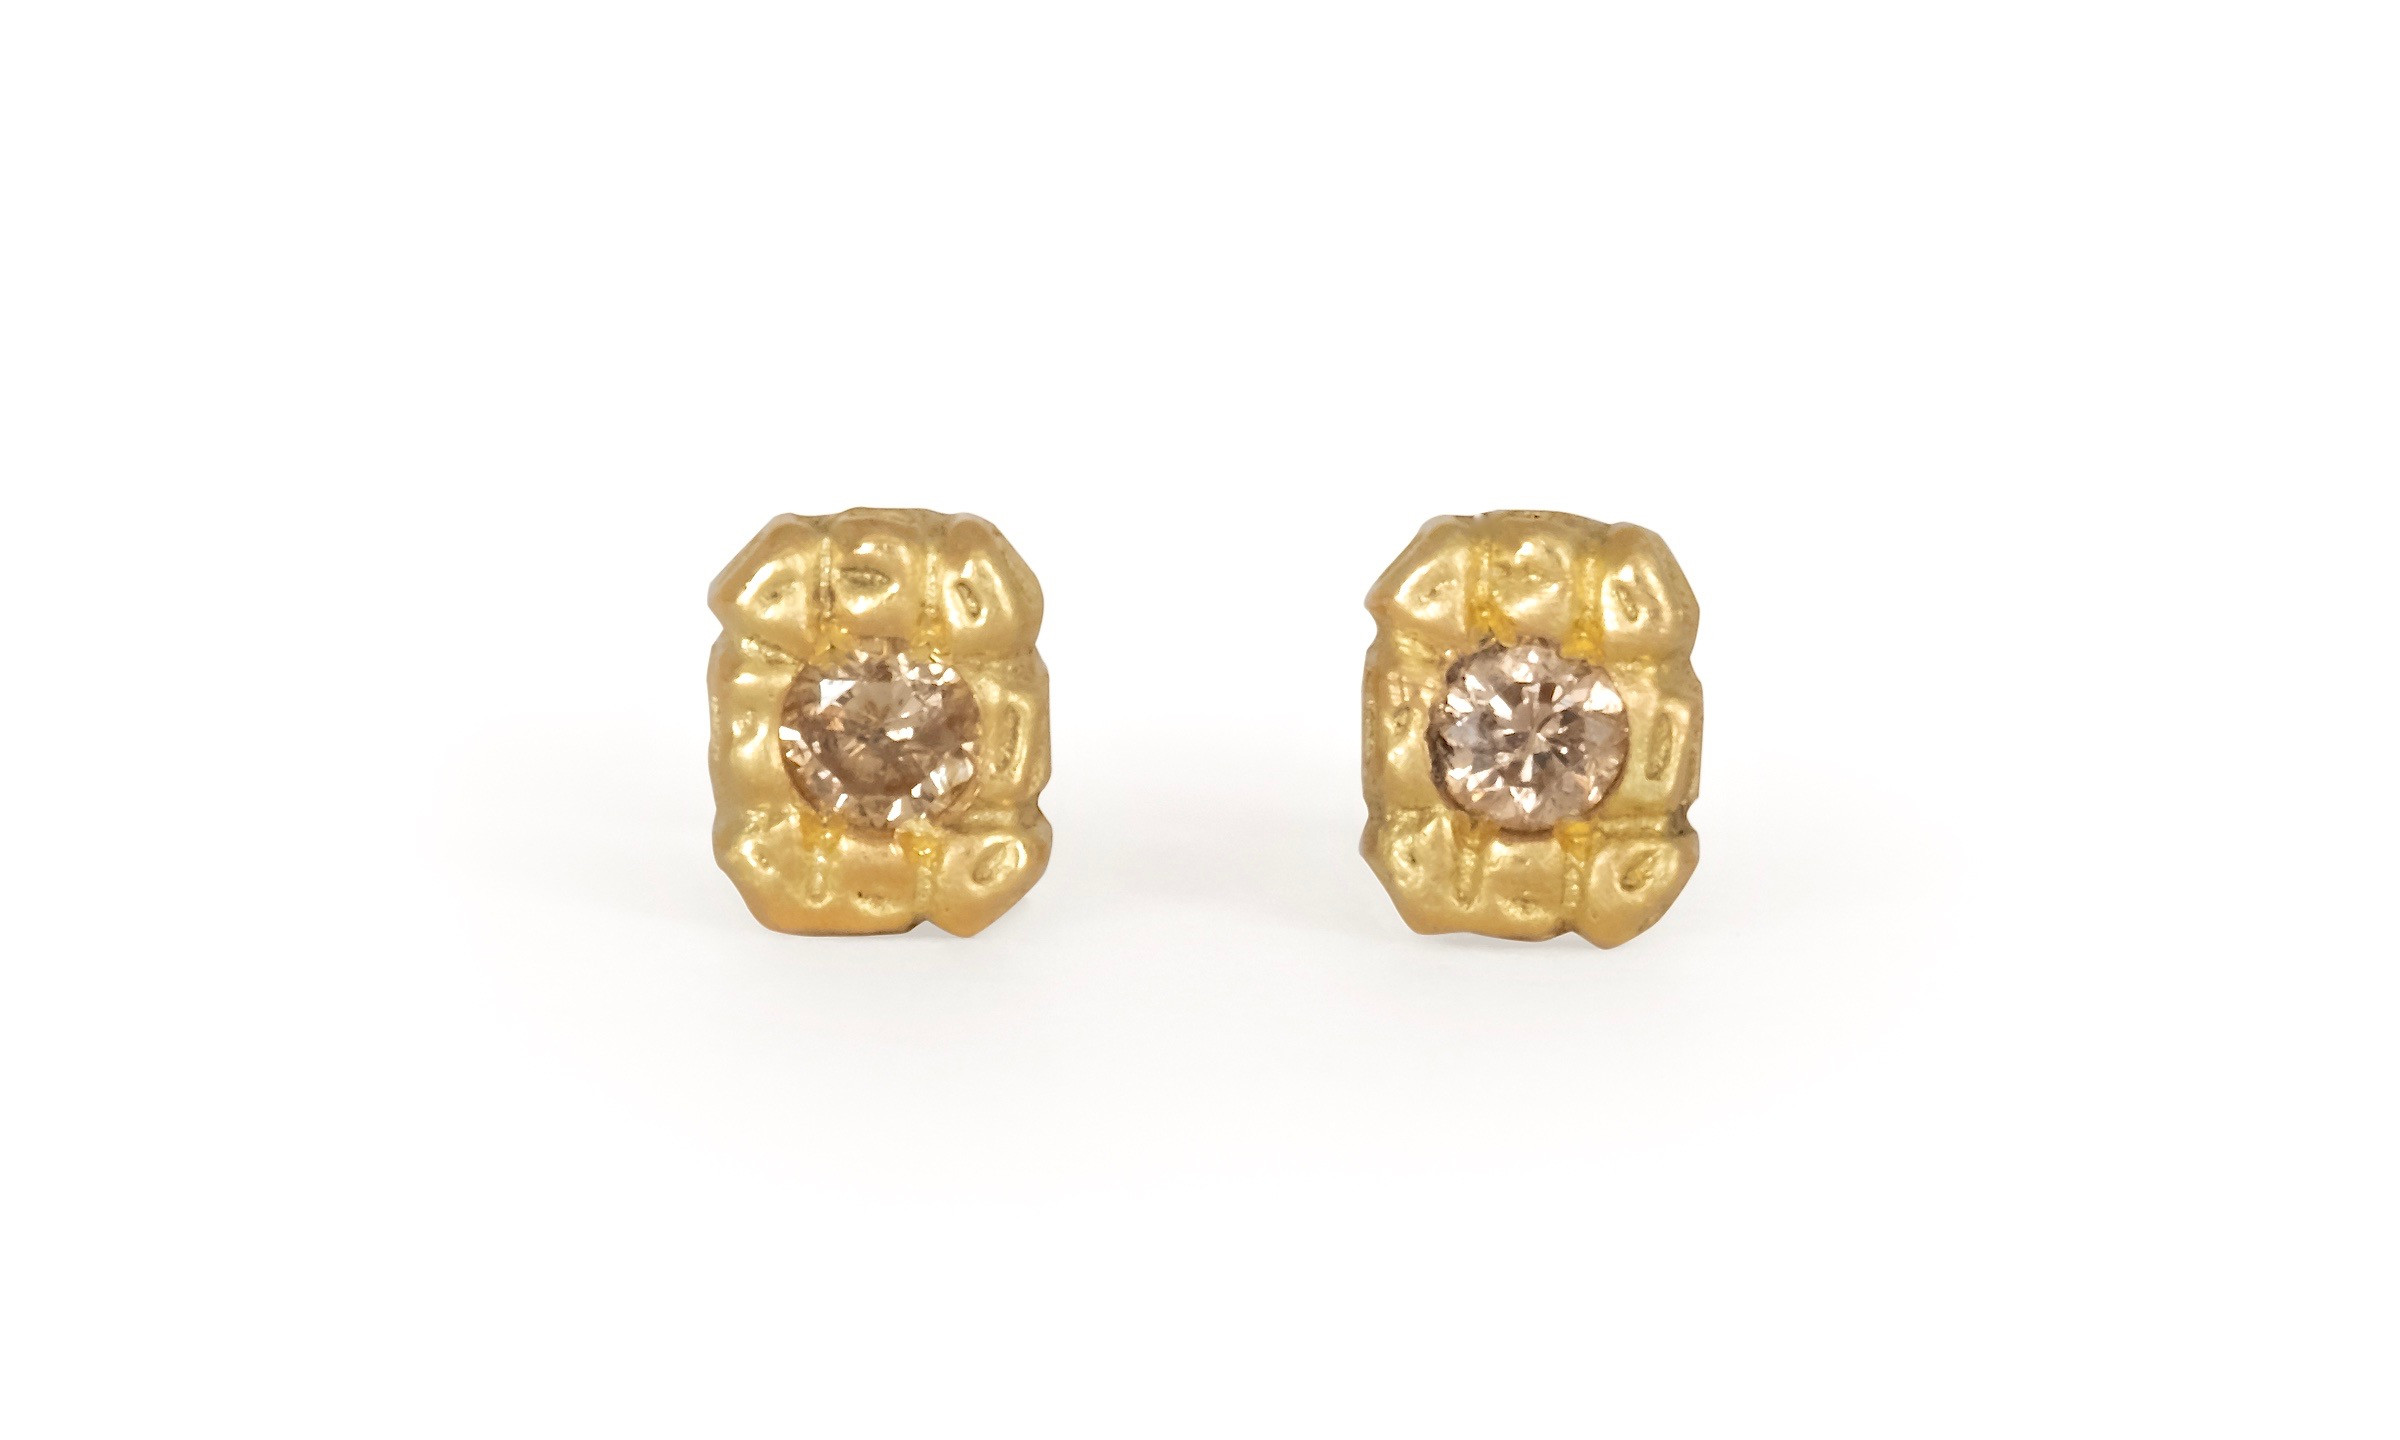 Susan Highsmith Gold and Diamond Earrings